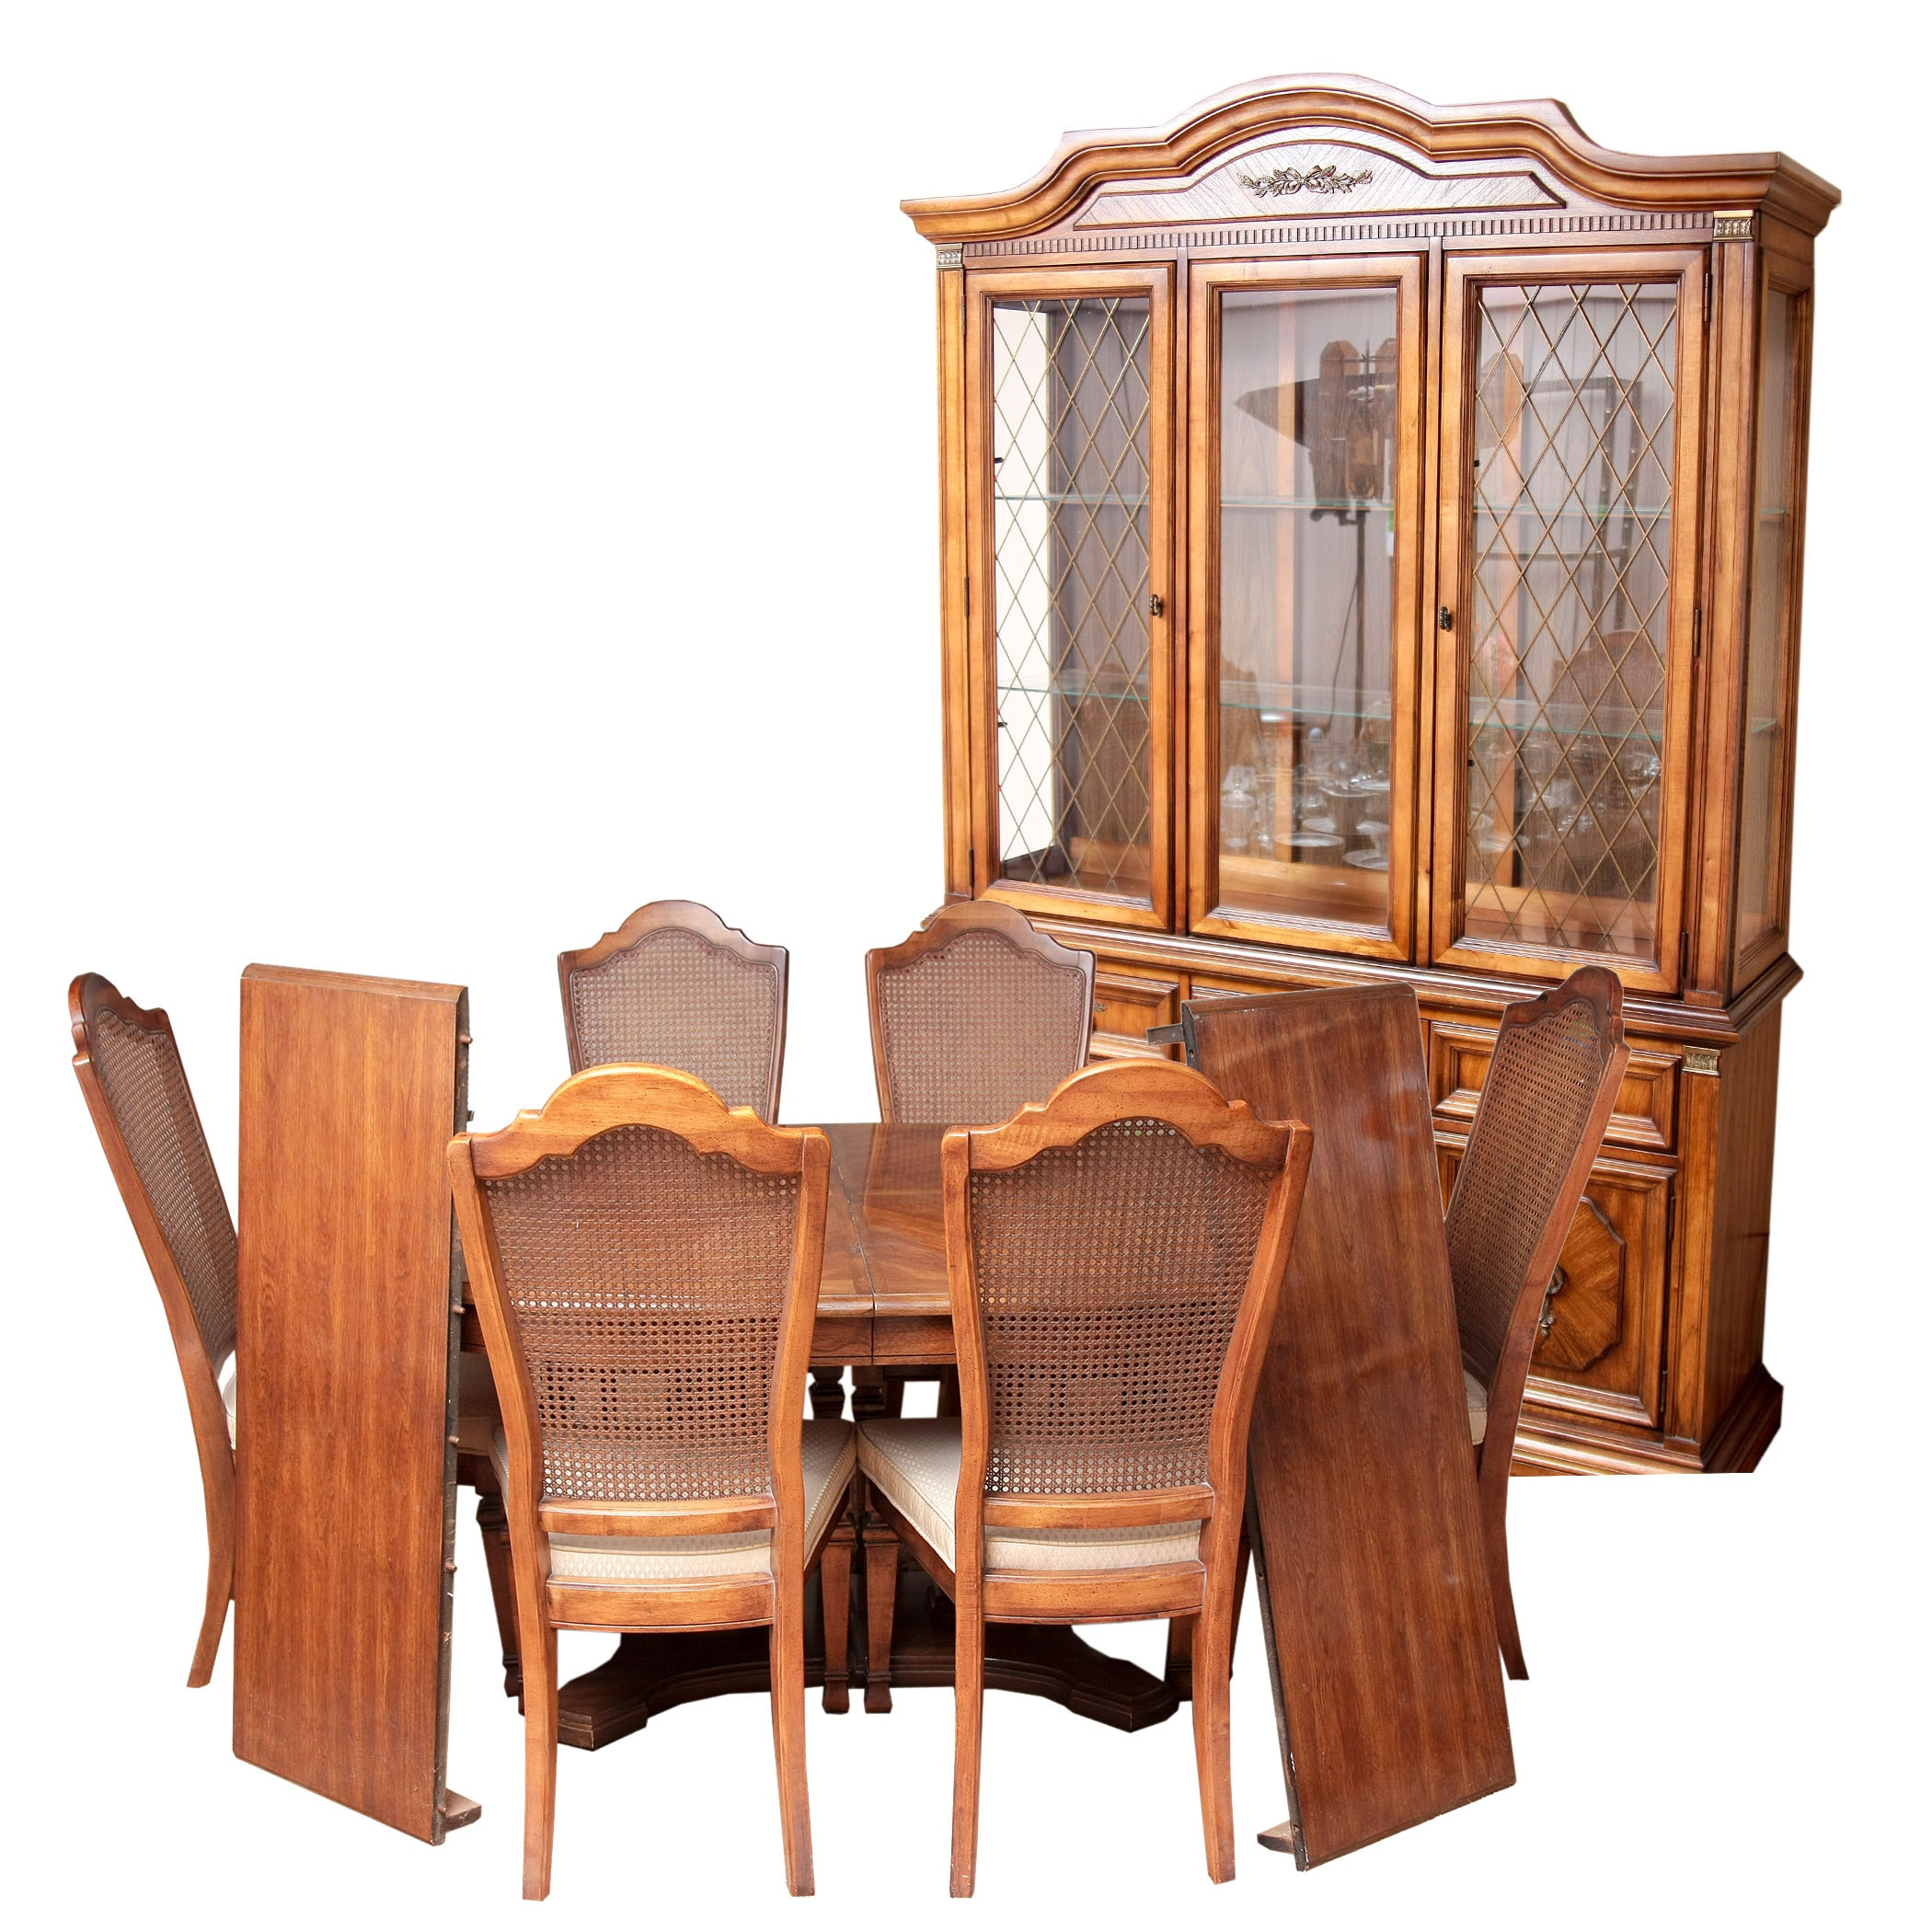 Stanley Furniture China Cabinet With Complementary Dining Table and Cane Back Chairs ...  sc 1 st  Everything But The House & Stanley Furniture China Cabinet With Complementary Dining Table and ...